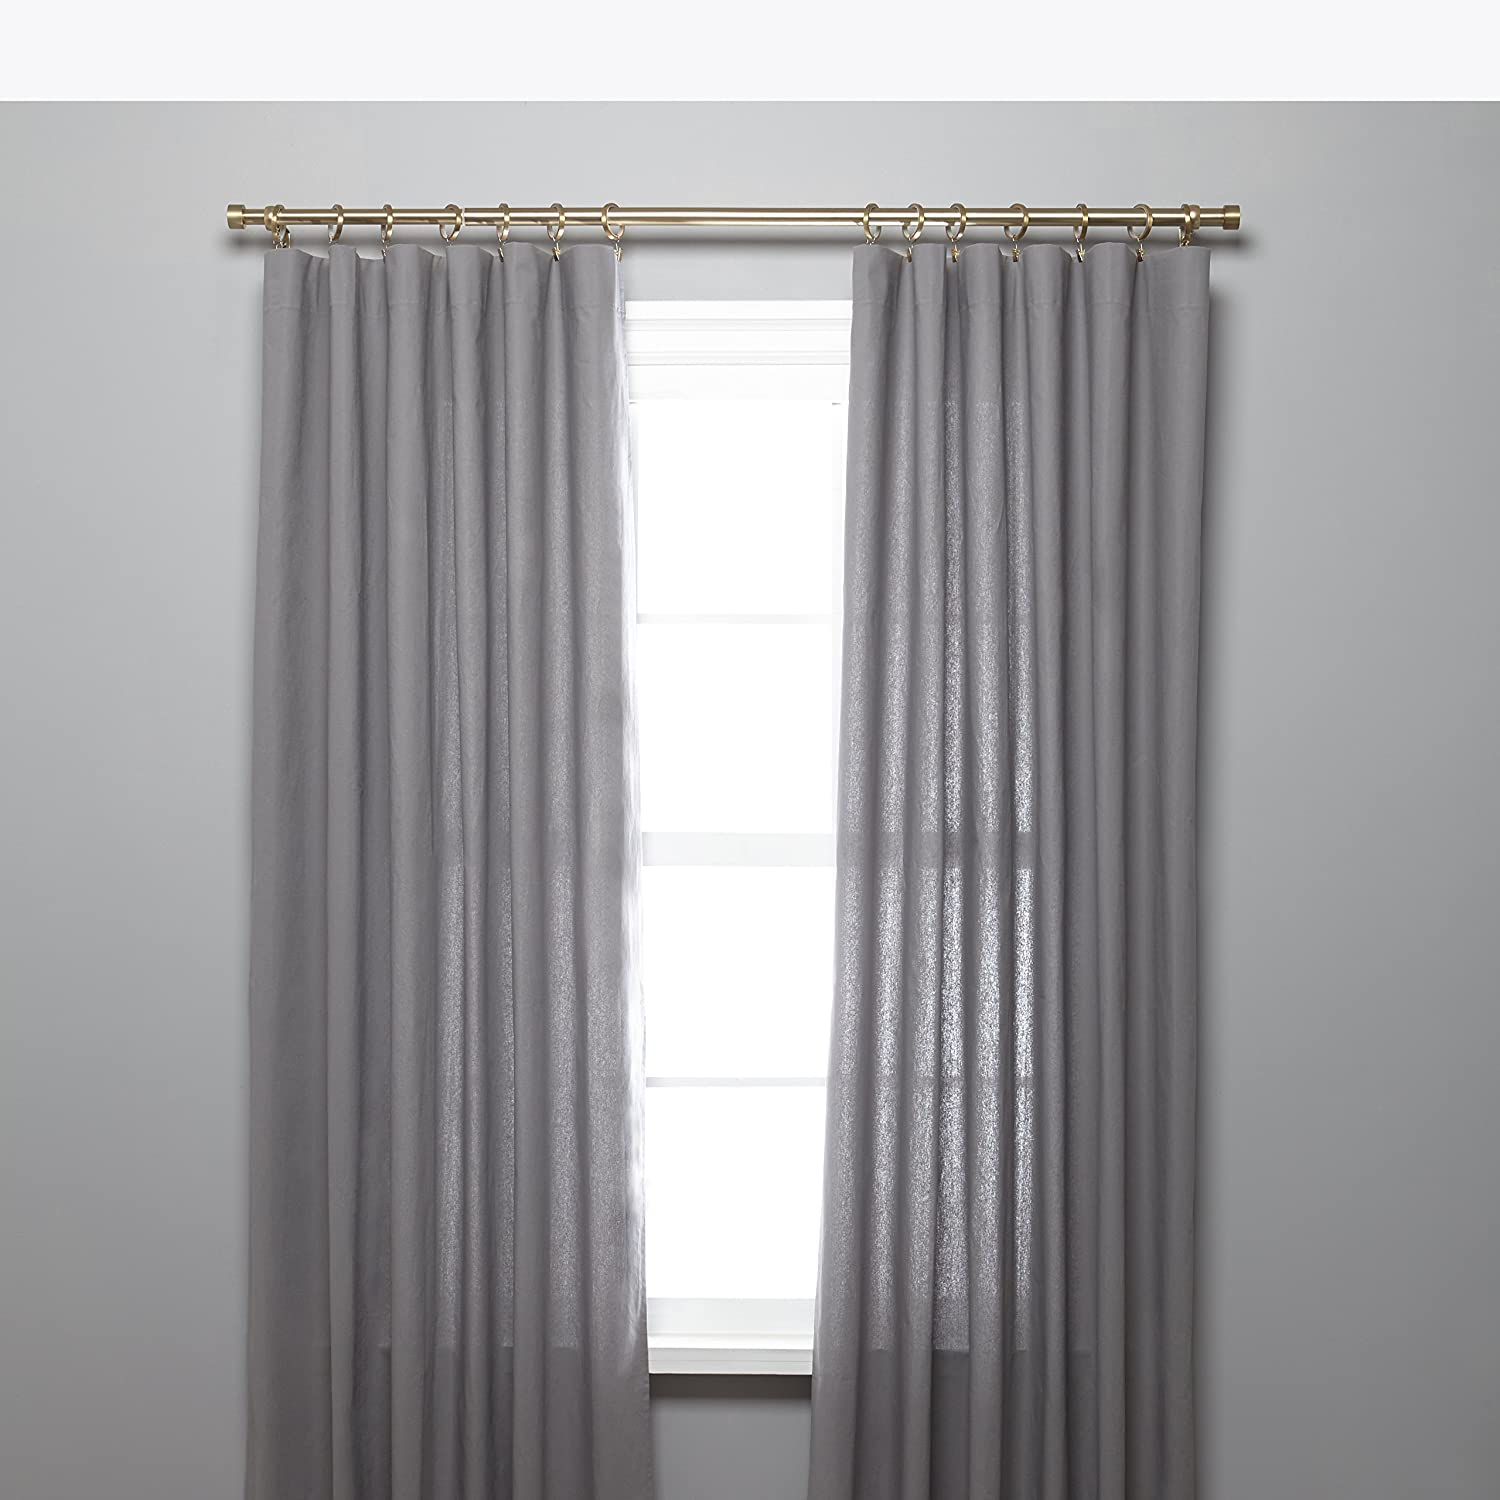 double exceptional pole design french of images adjustable rods drapery cafe rod full curtains inch black curtain size door extender